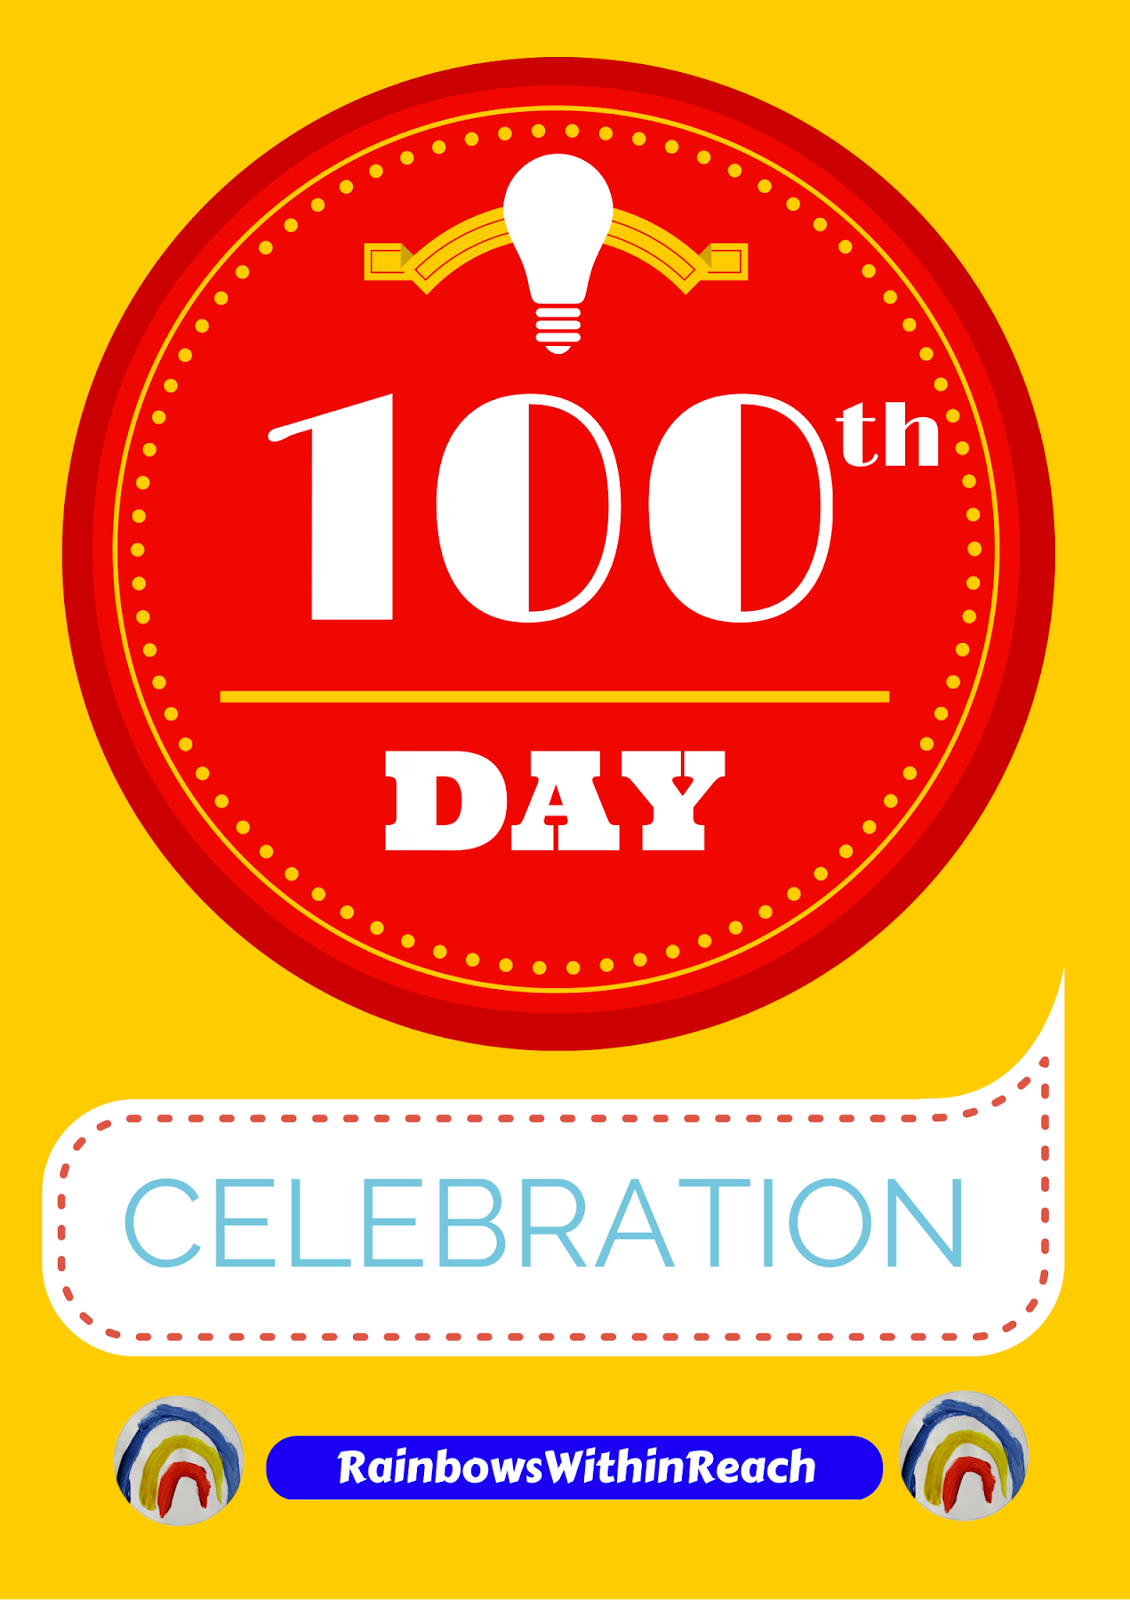 100 Day Celebration RoundUP at RainbowsWithinReach